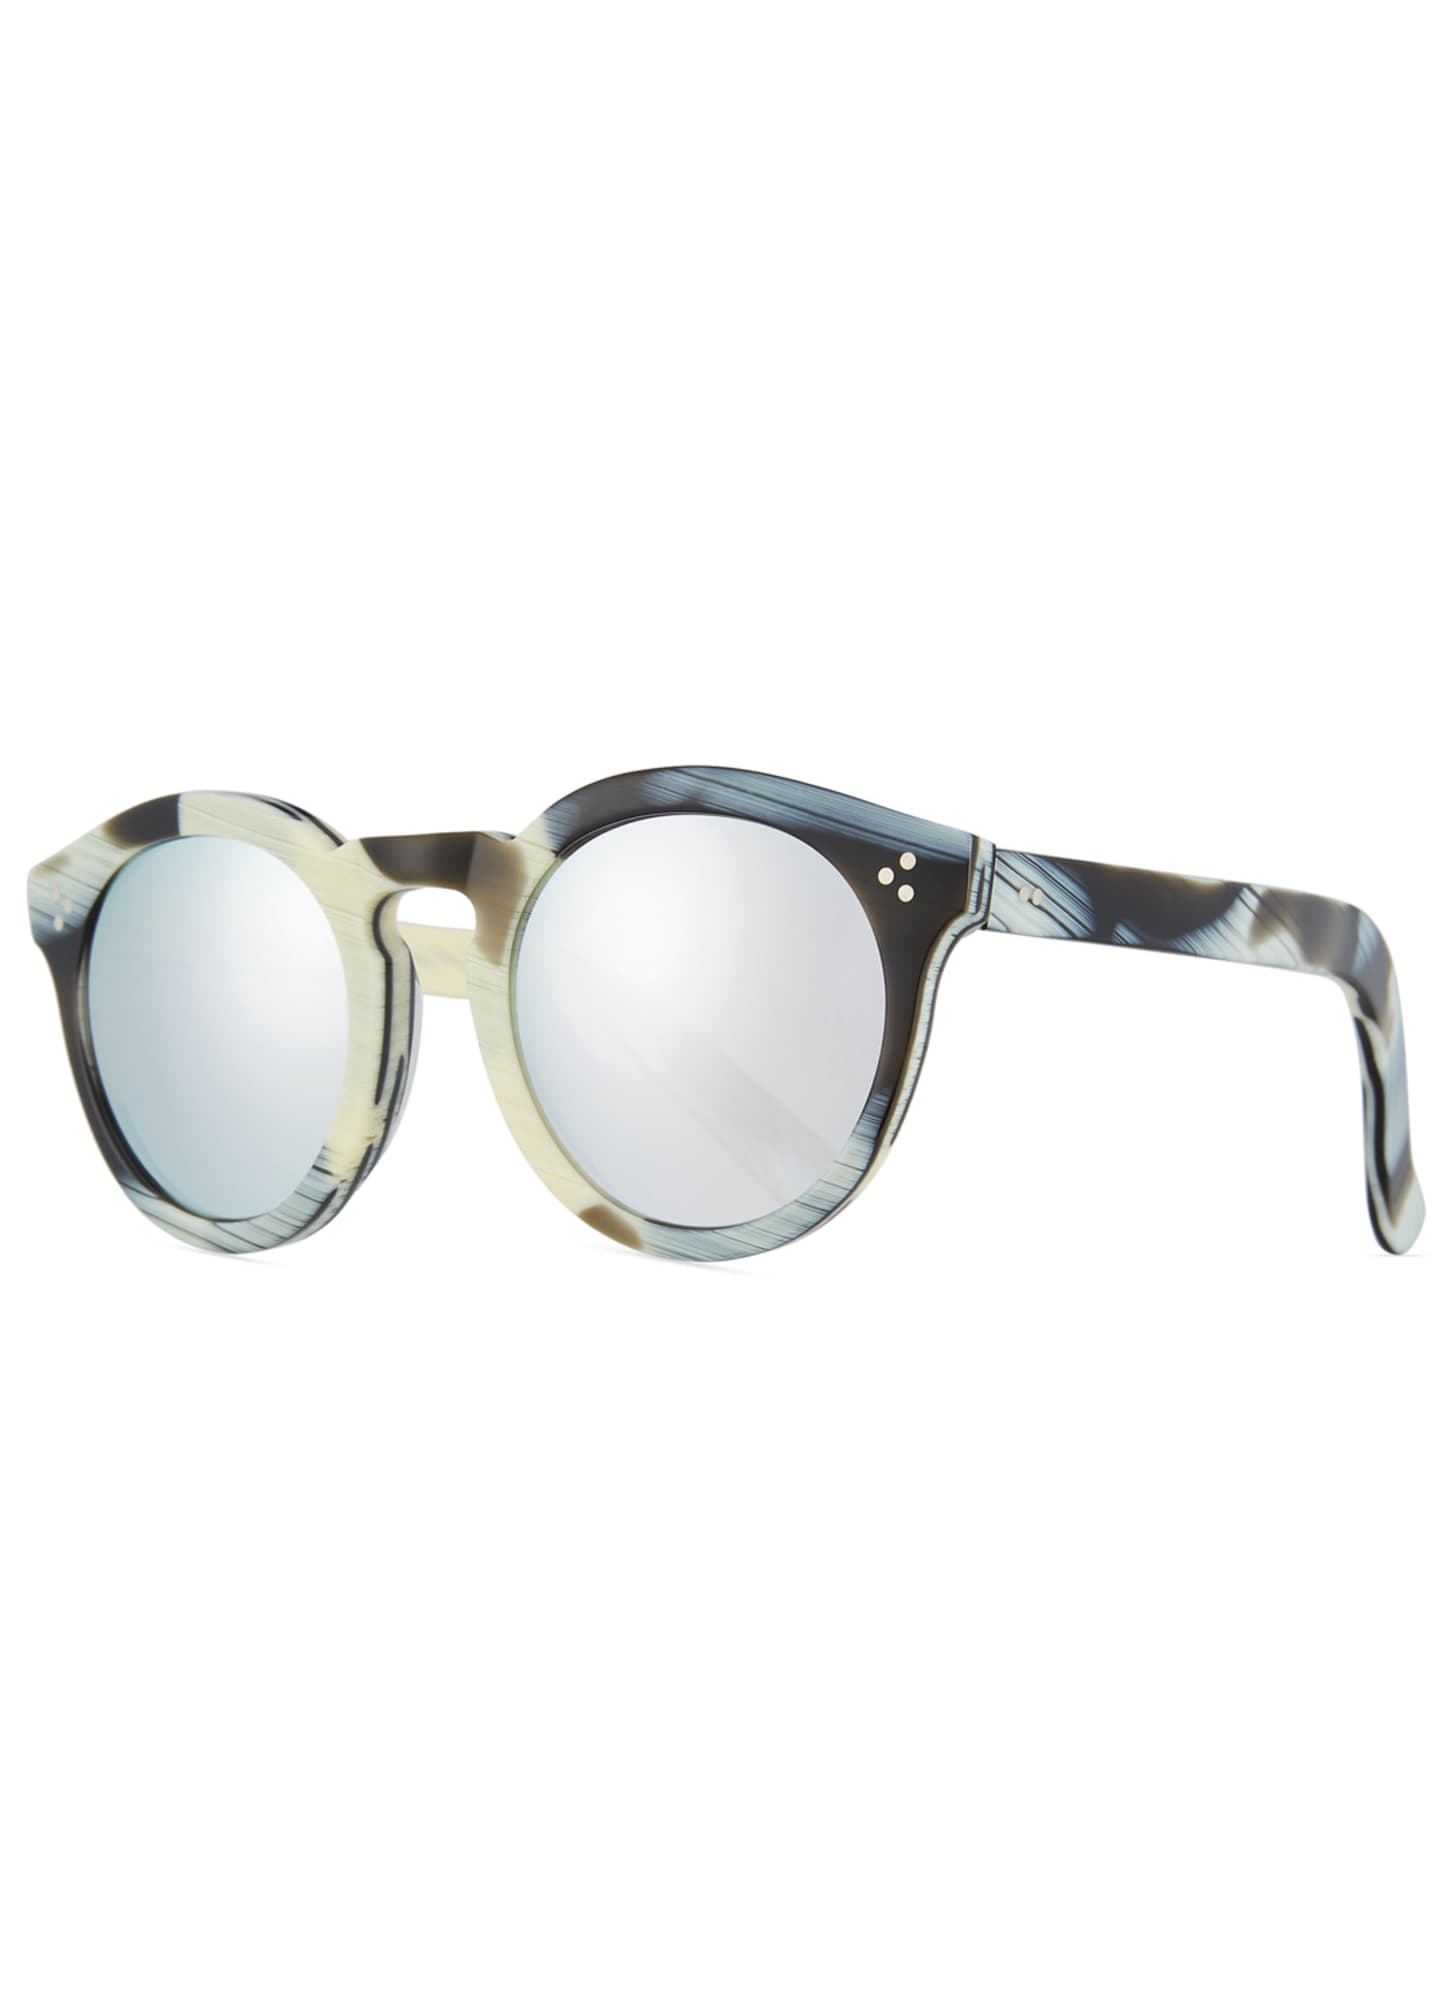 Illesteva Patterned Round Monochromatic Sunglasses